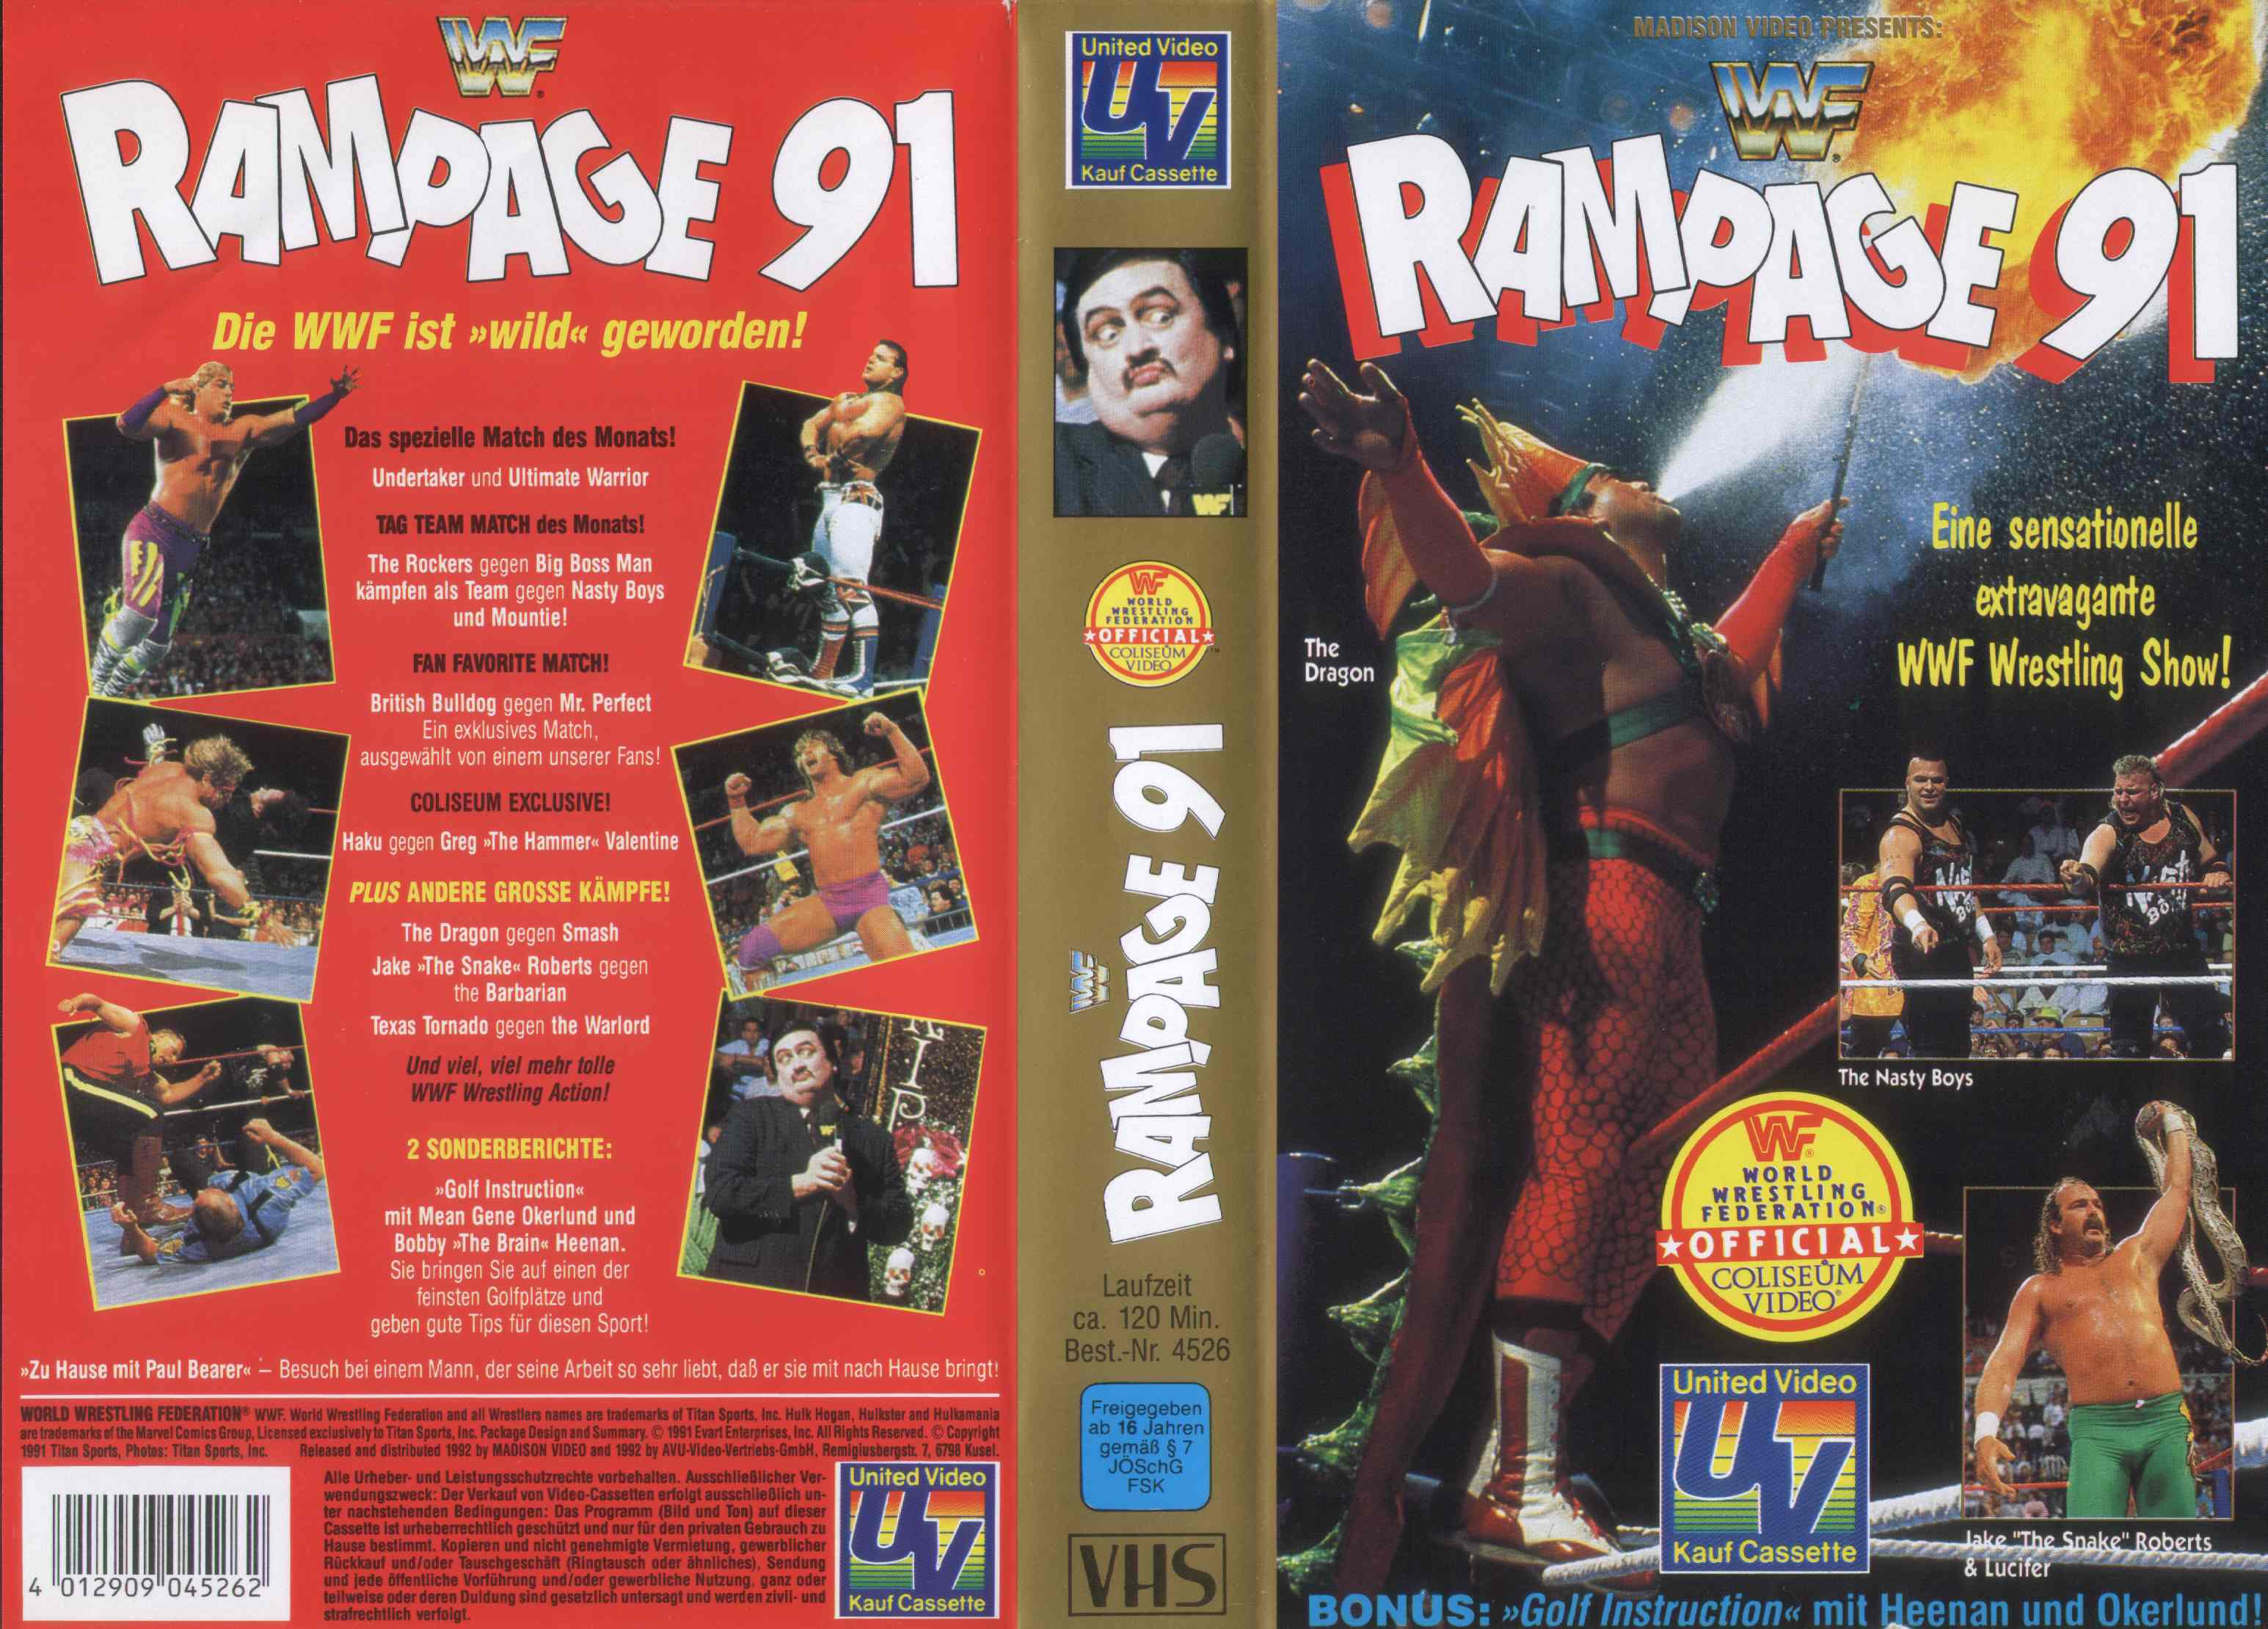 WWF_Rampage_91_-_Cover